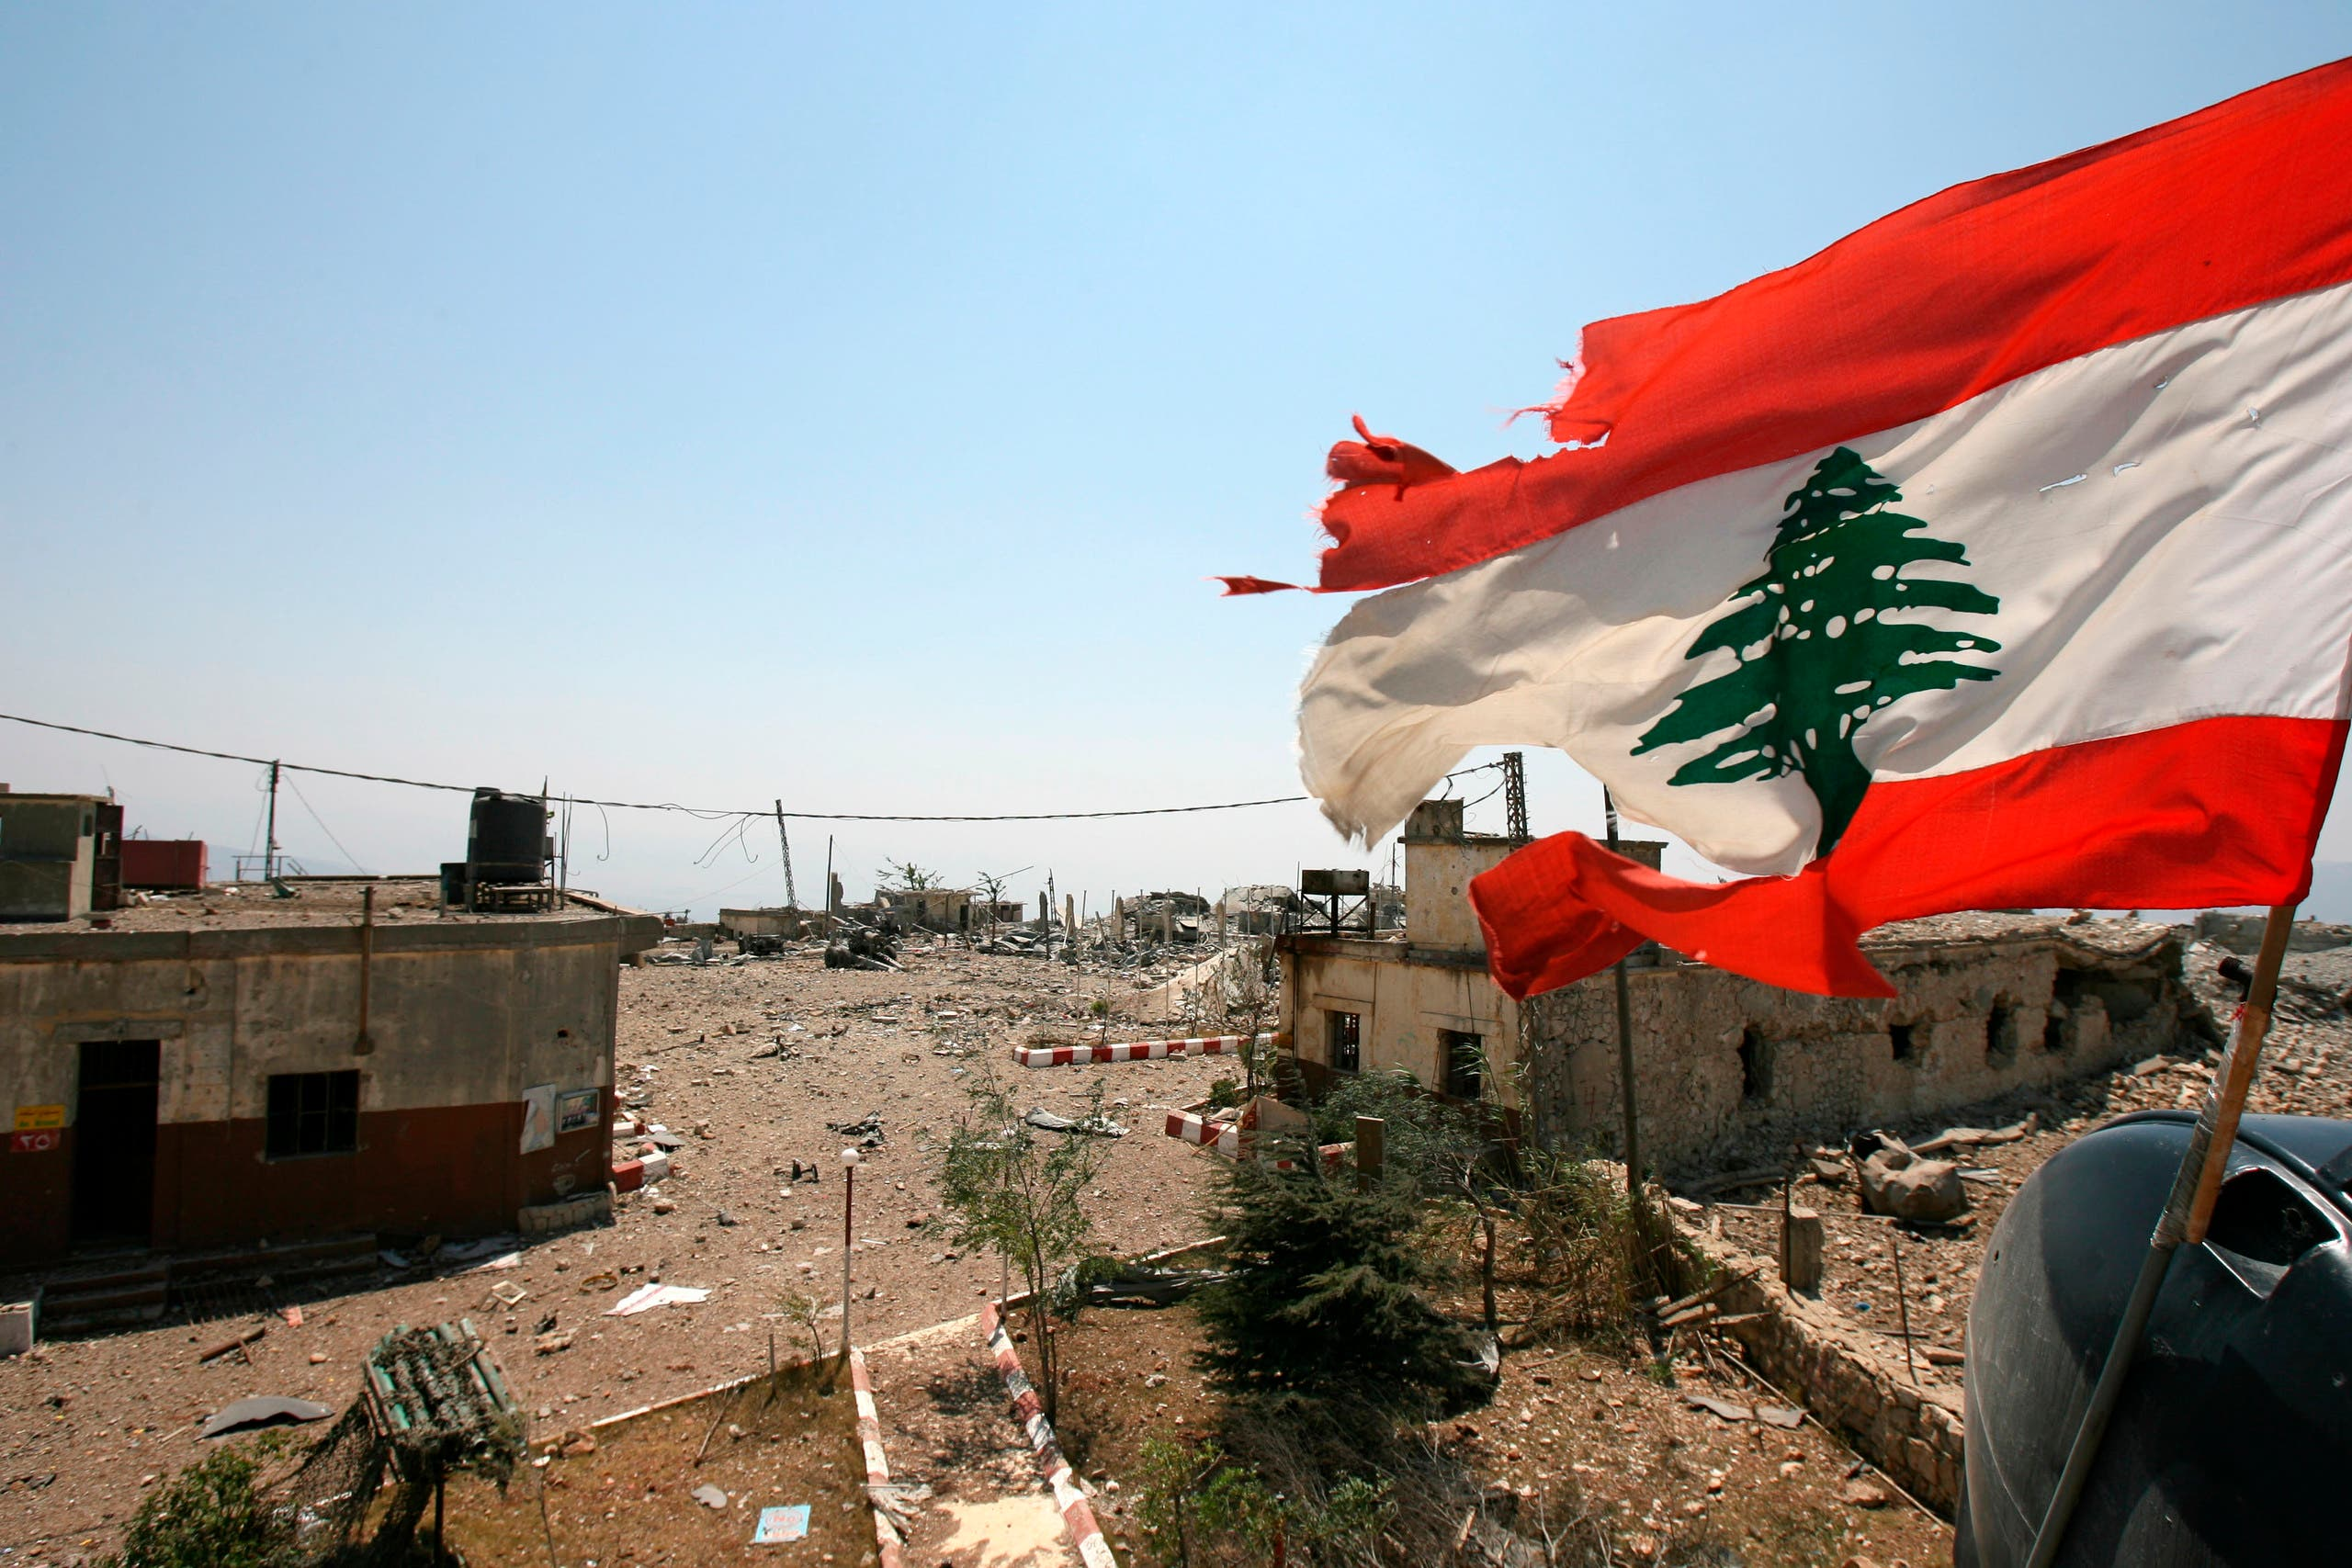 A Lebanese flag flies over Khiam prison, in the southern town of Khiam, Lebanon. (AP)